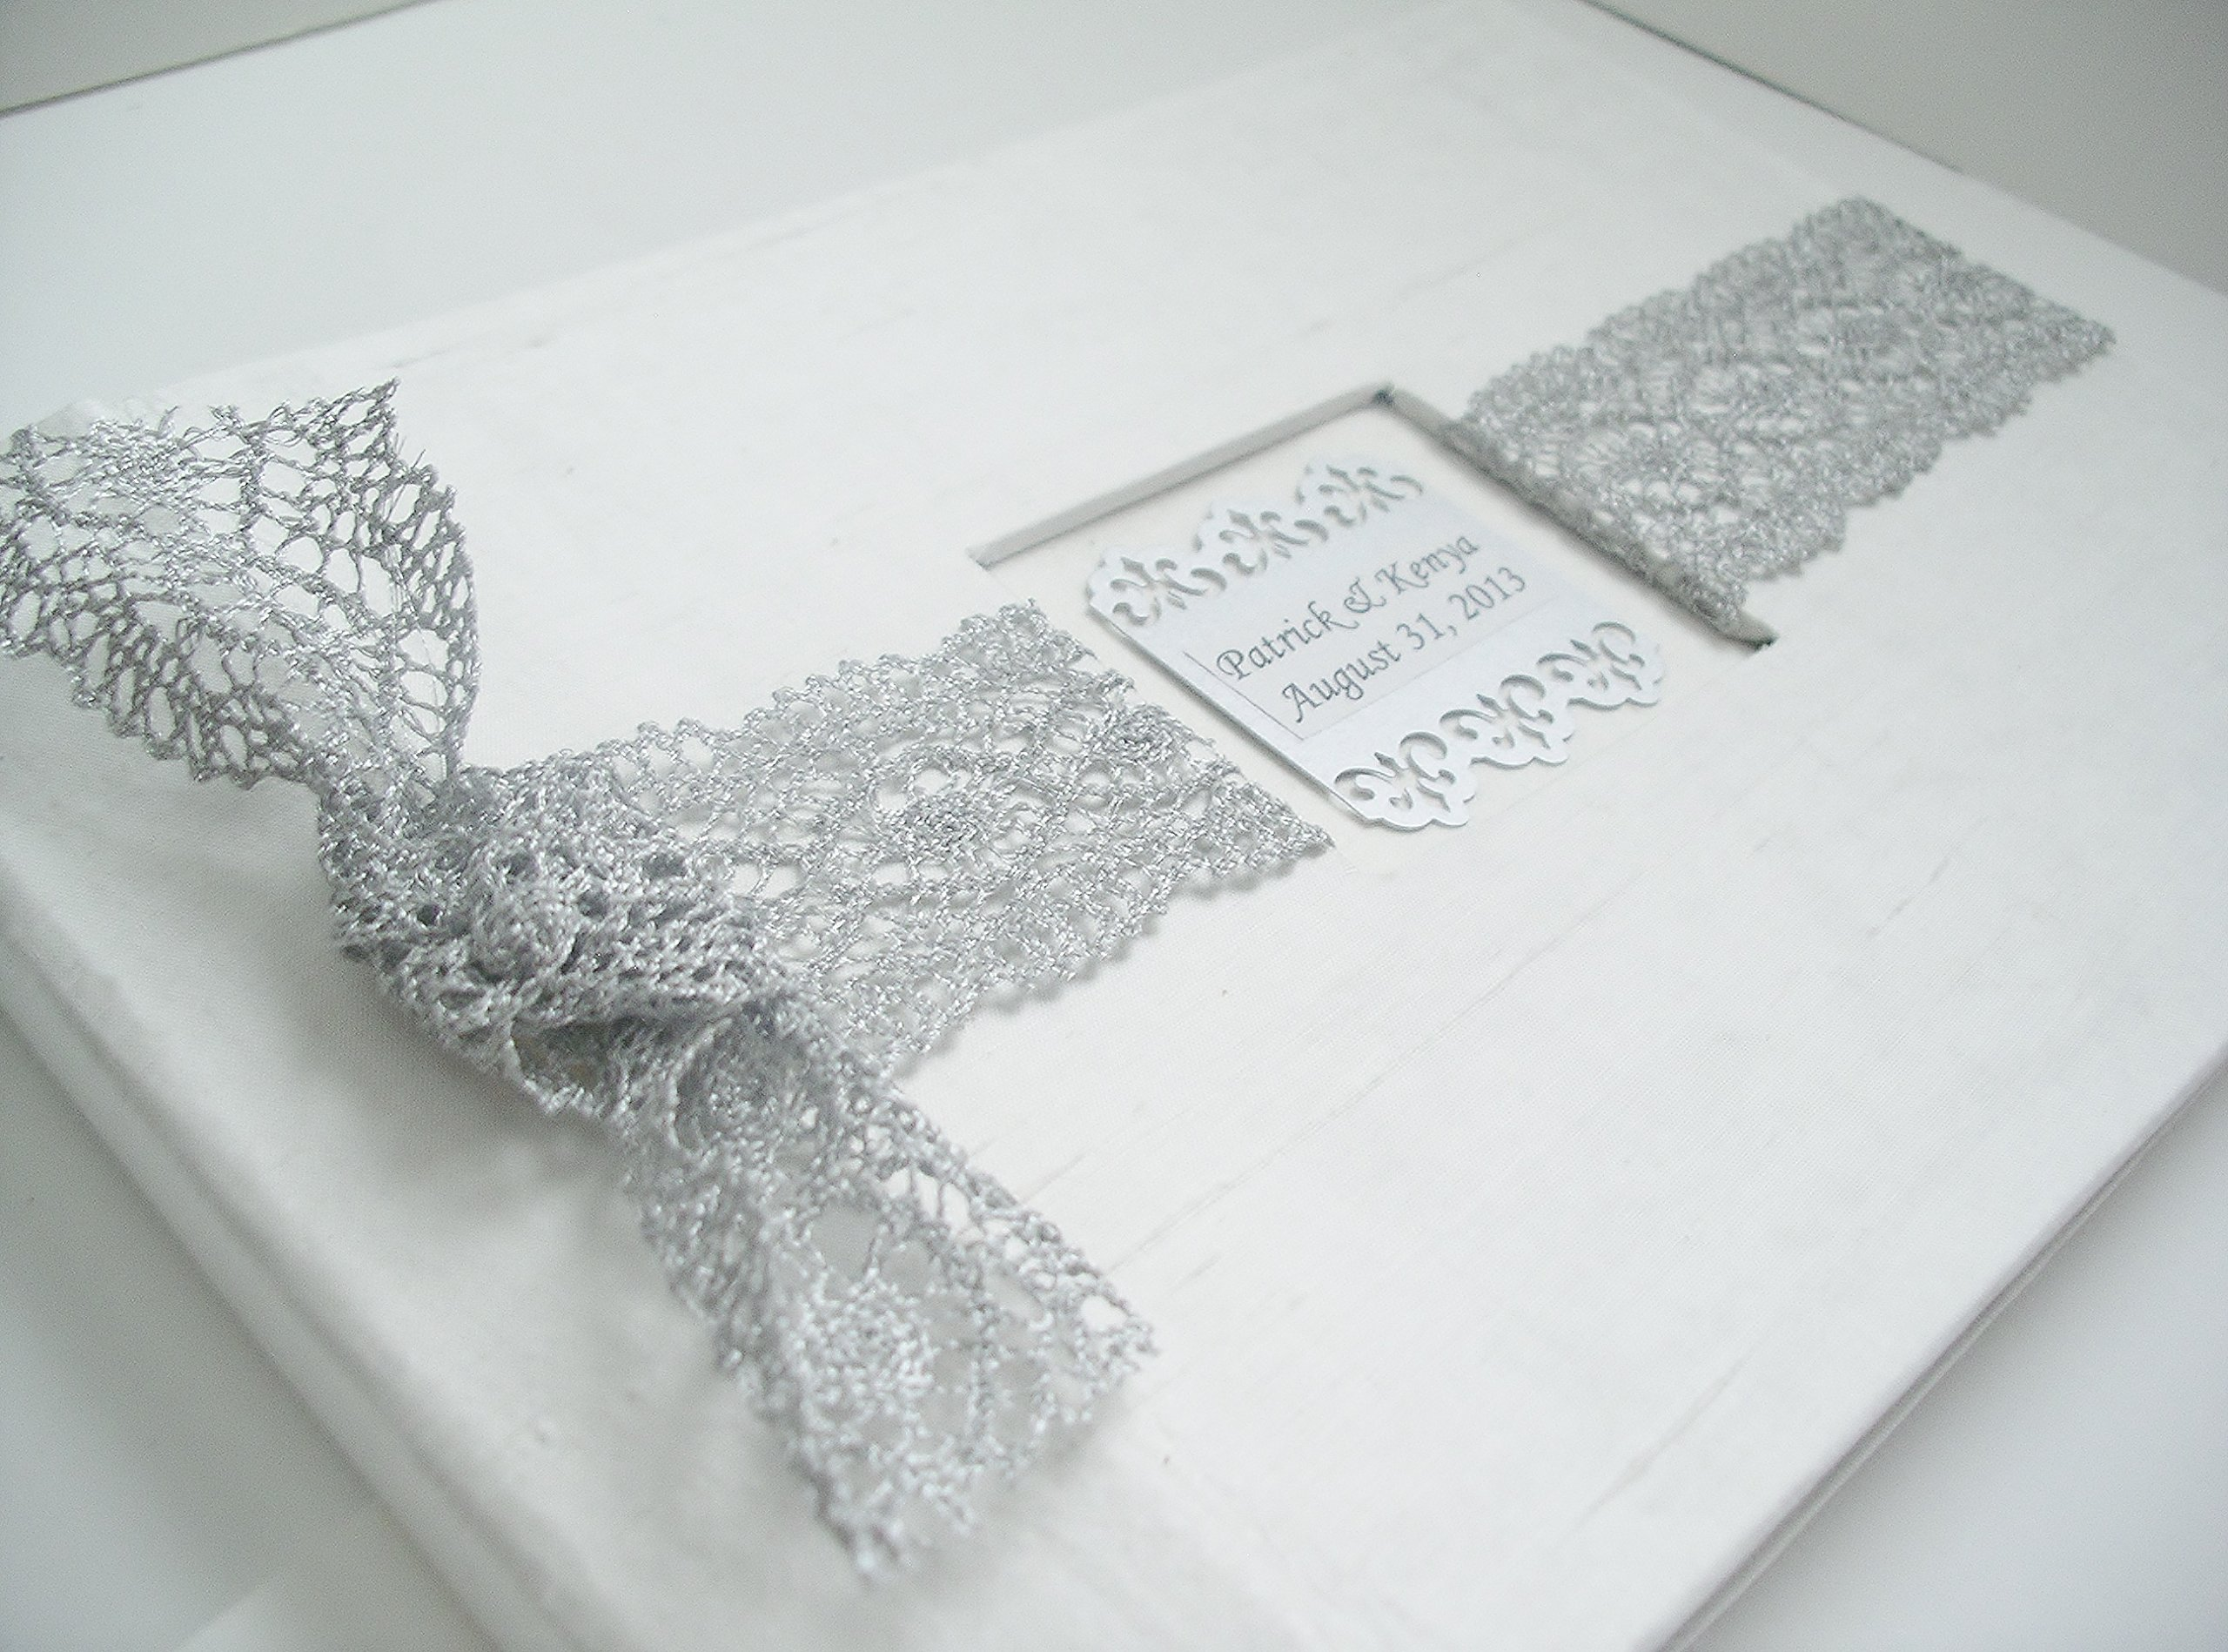 Lace Wedding Guest Book - Bridal Lace GuestBook - White and Silver French Lace Guestbook - Personalized